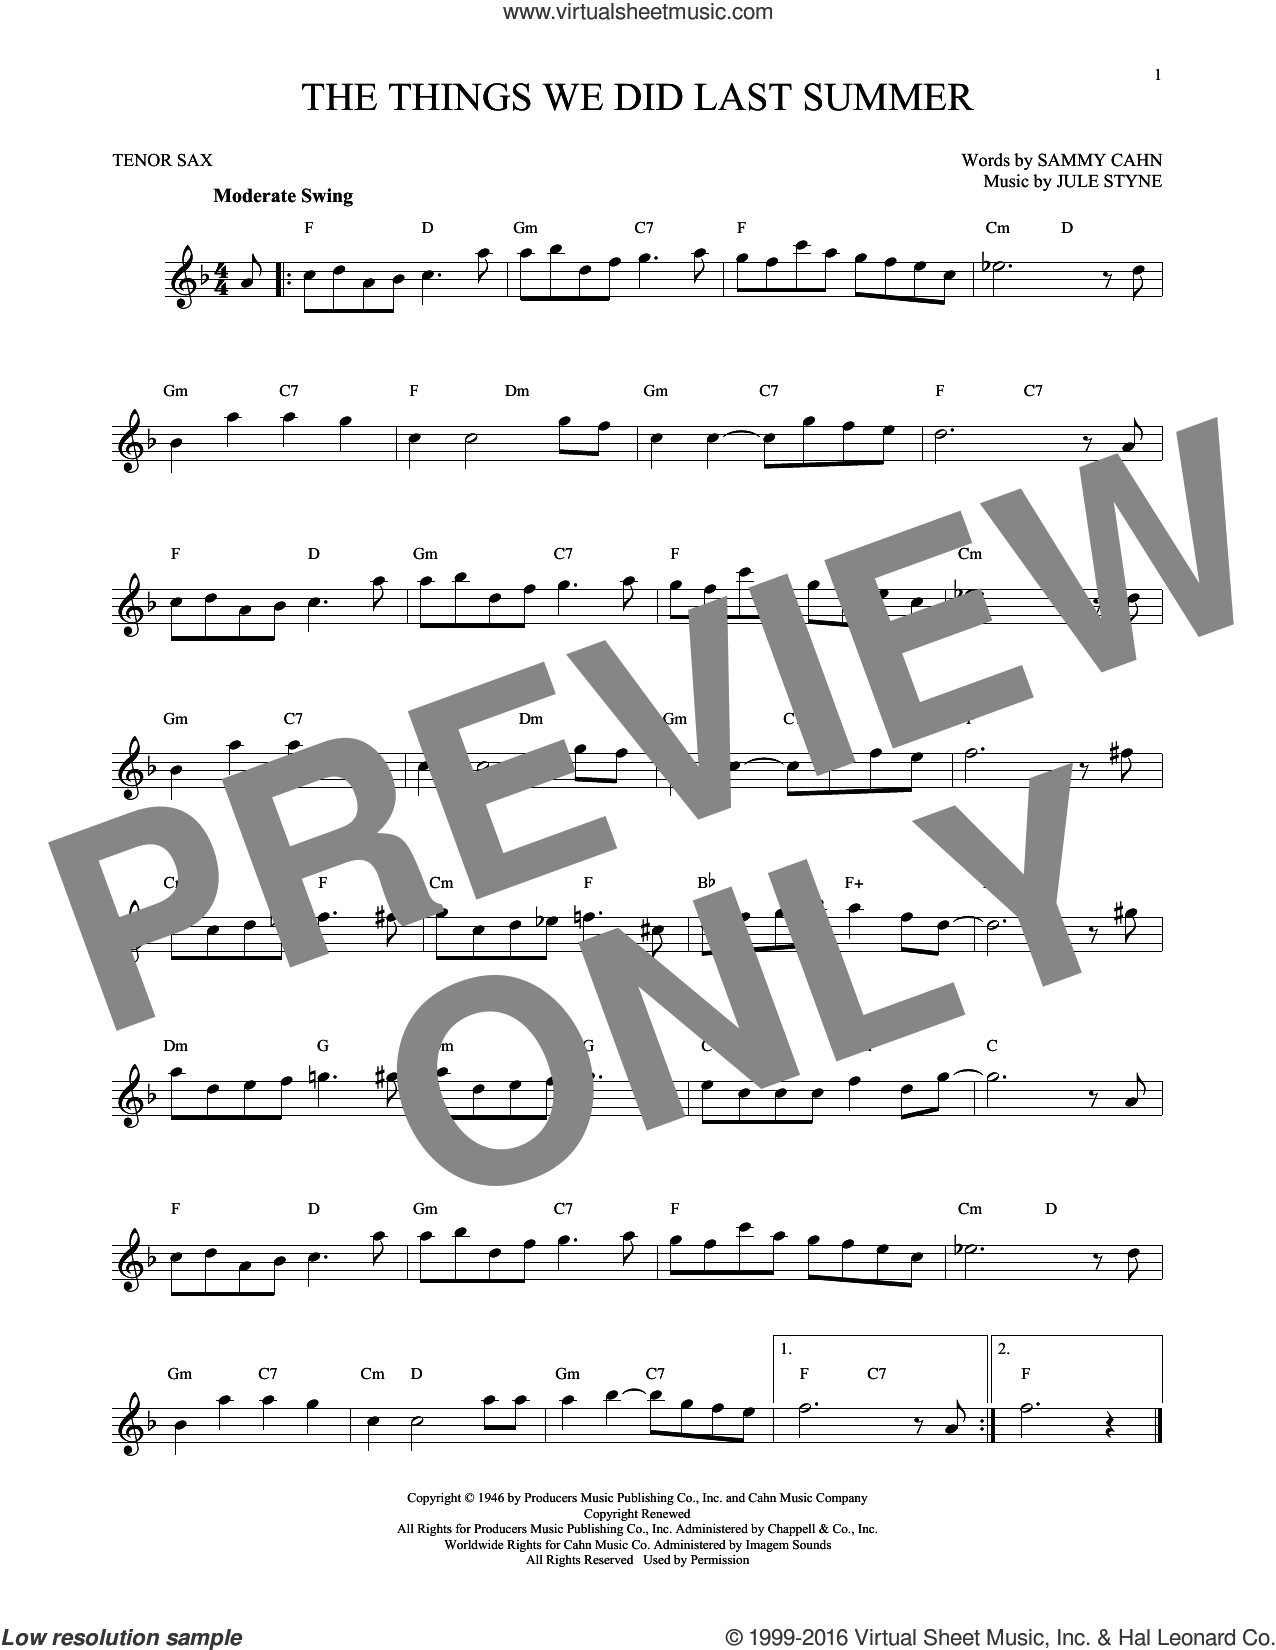 The Things We Did Last Summer sheet music for tenor saxophone solo by Sammy Cahn and Jule Styne, intermediate skill level